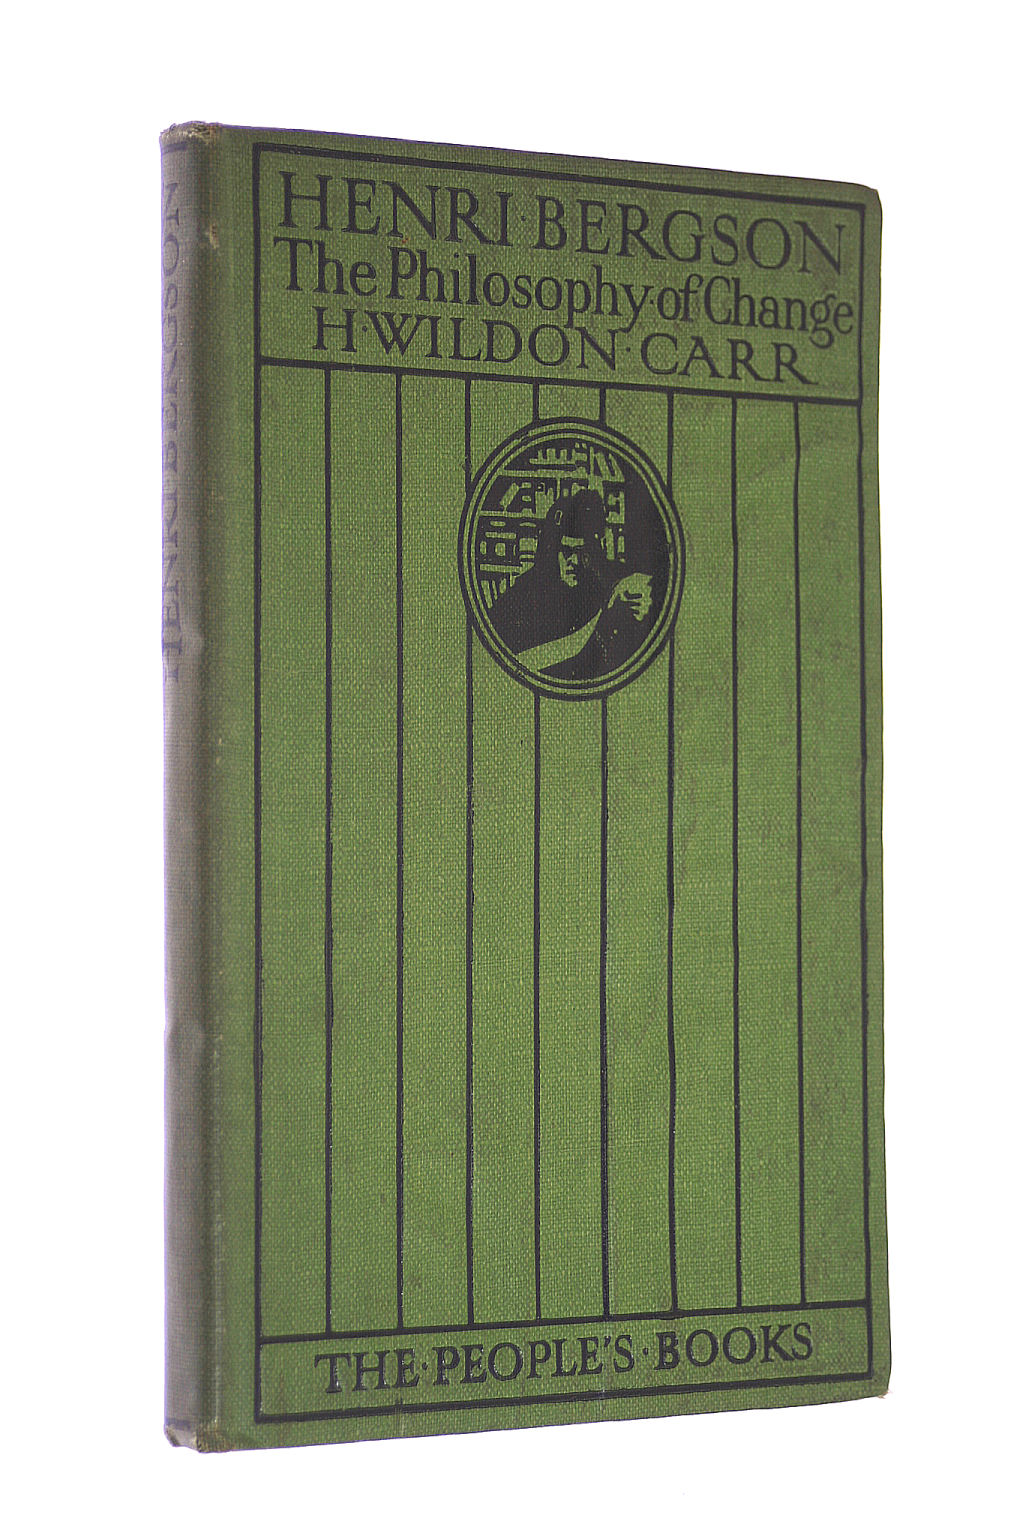 Image for Henri Bergson - the Philosophy of Change. [The People's Book]. Jack. [1911].